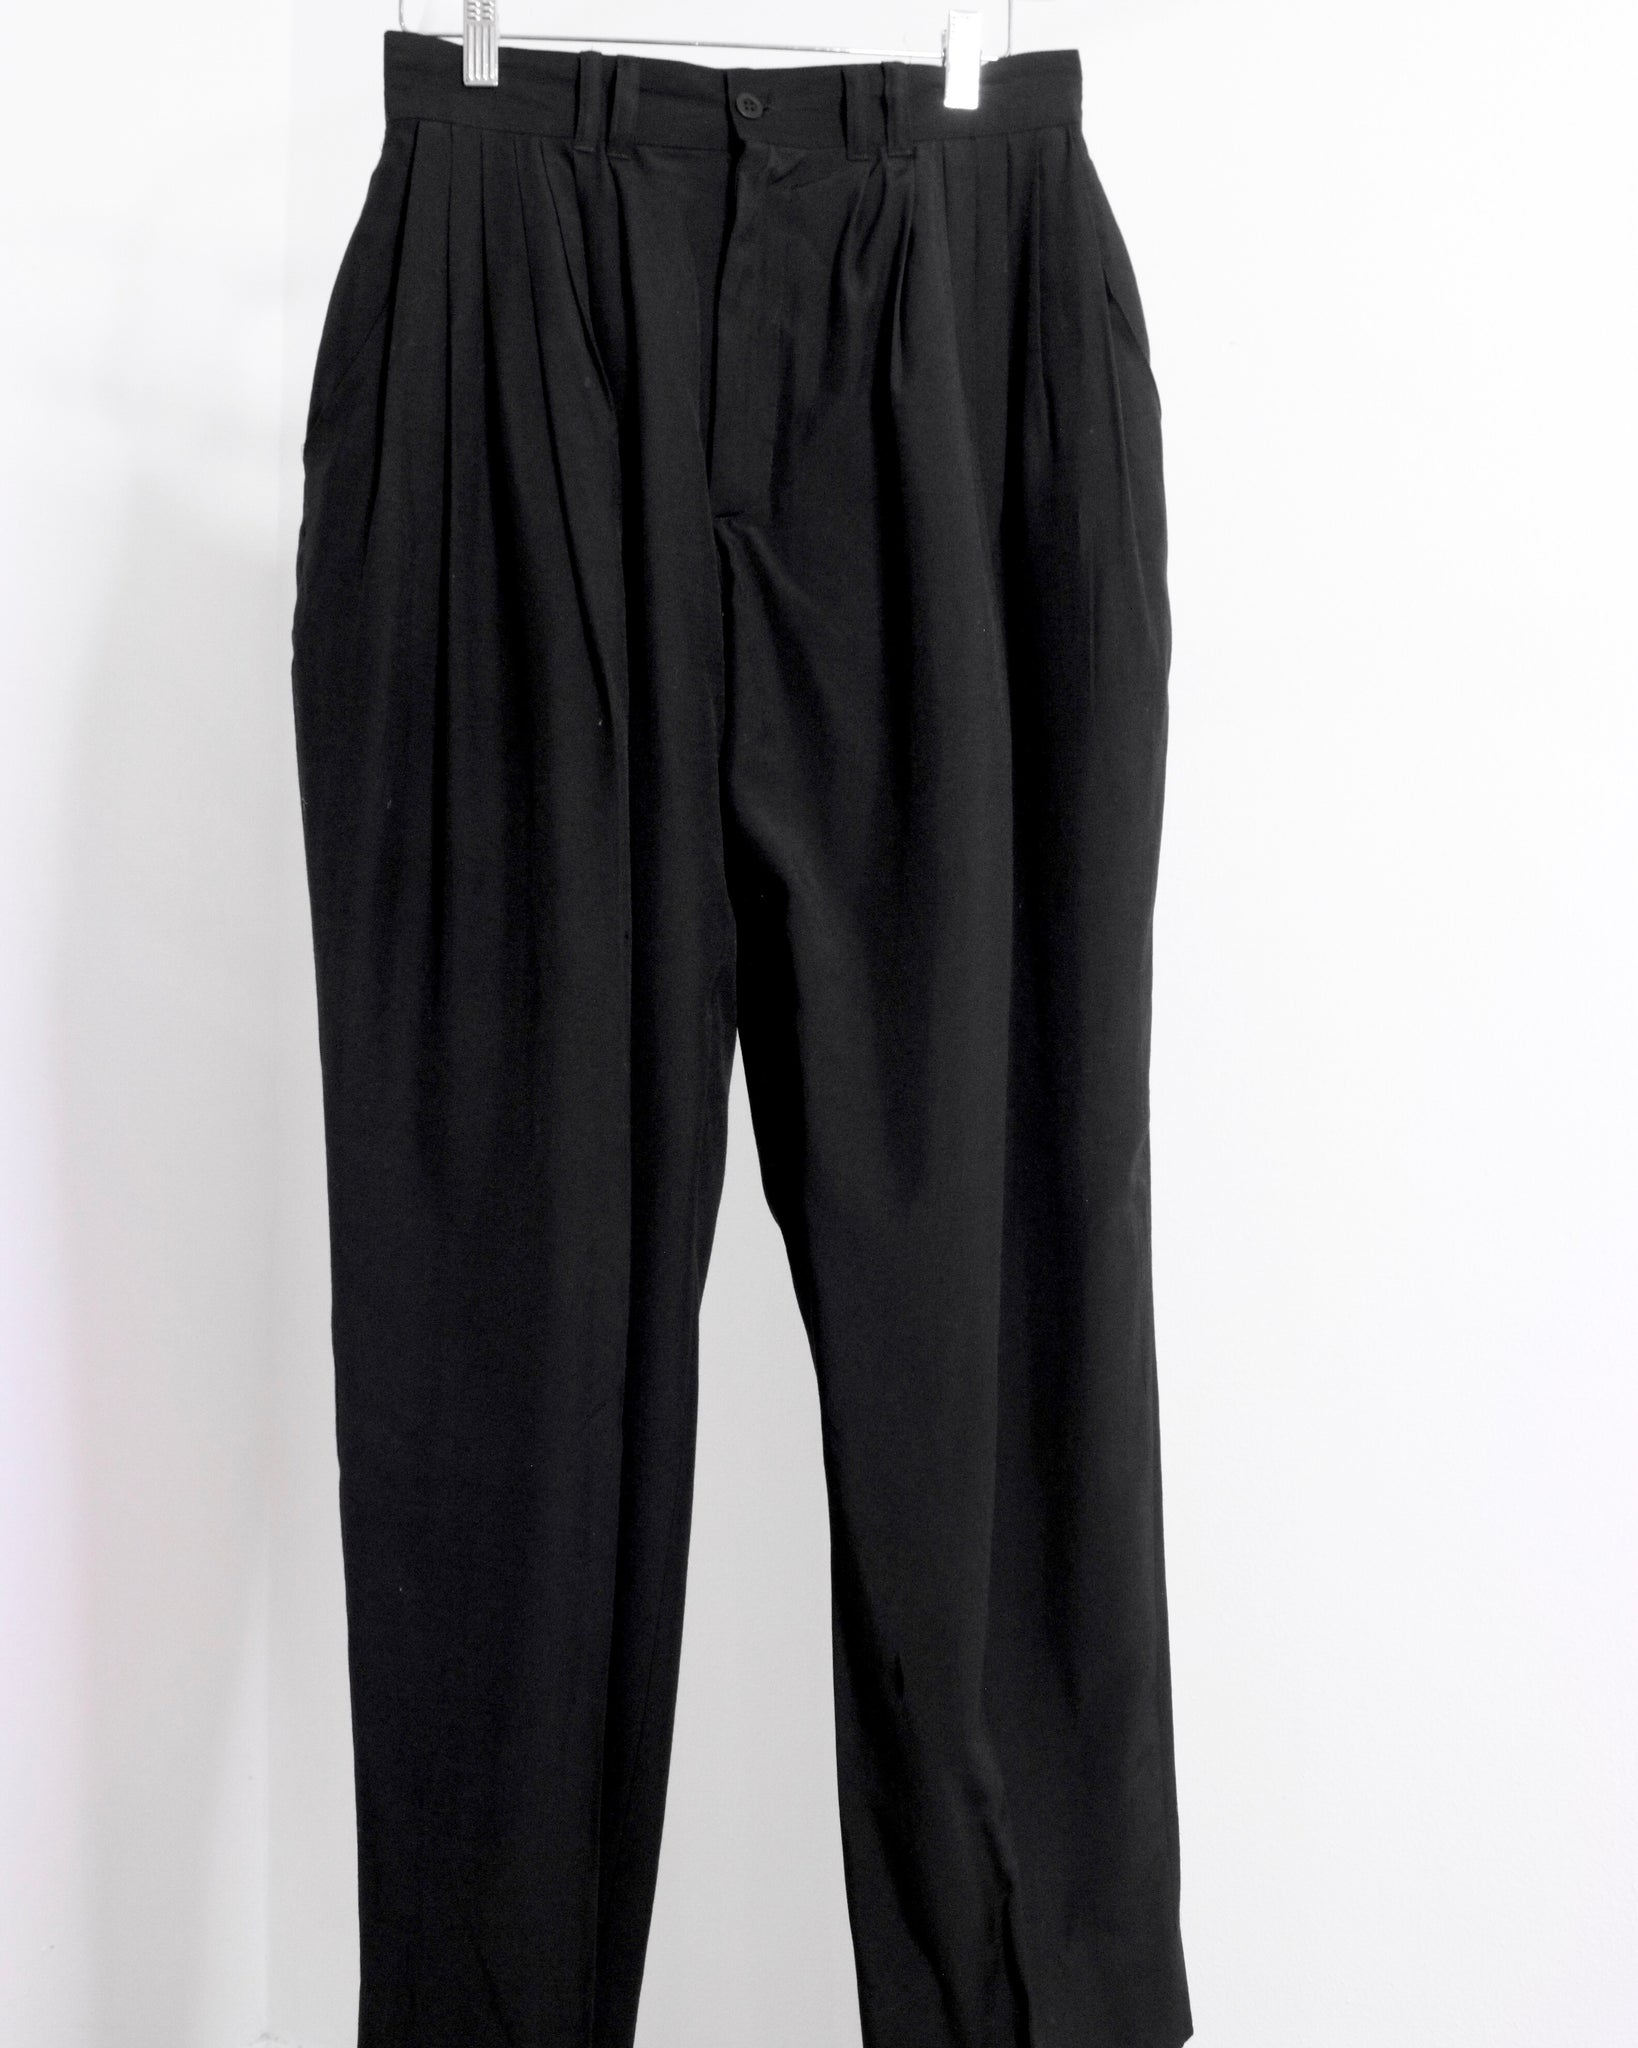 Black High-Waist Pleated Pant